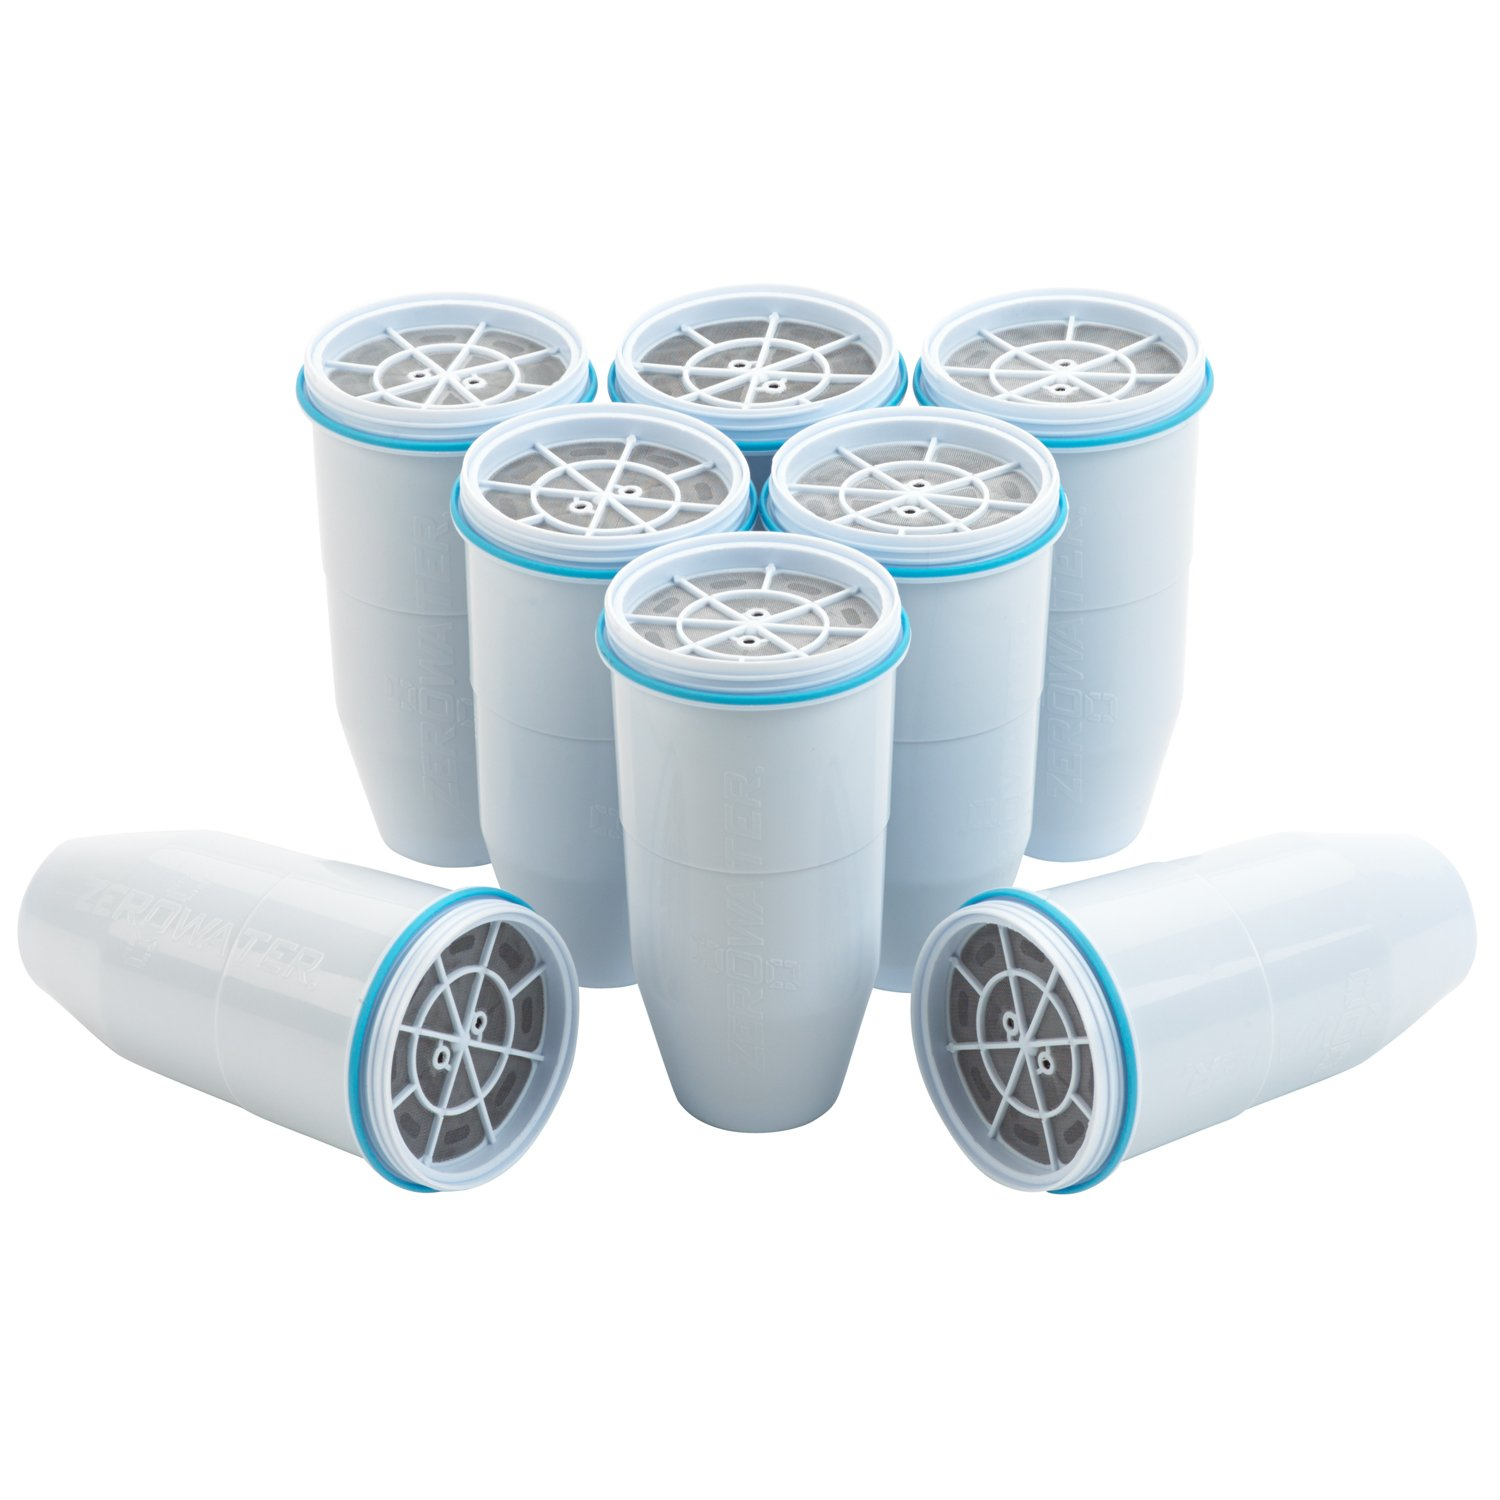 ZeroWater Replacement Filters 8-Pack BPA-Free Replacement Water Filters for ZeroWater Pitchers and Dispensers NSF Certified to Reduce Lead and Other Heavy Metals